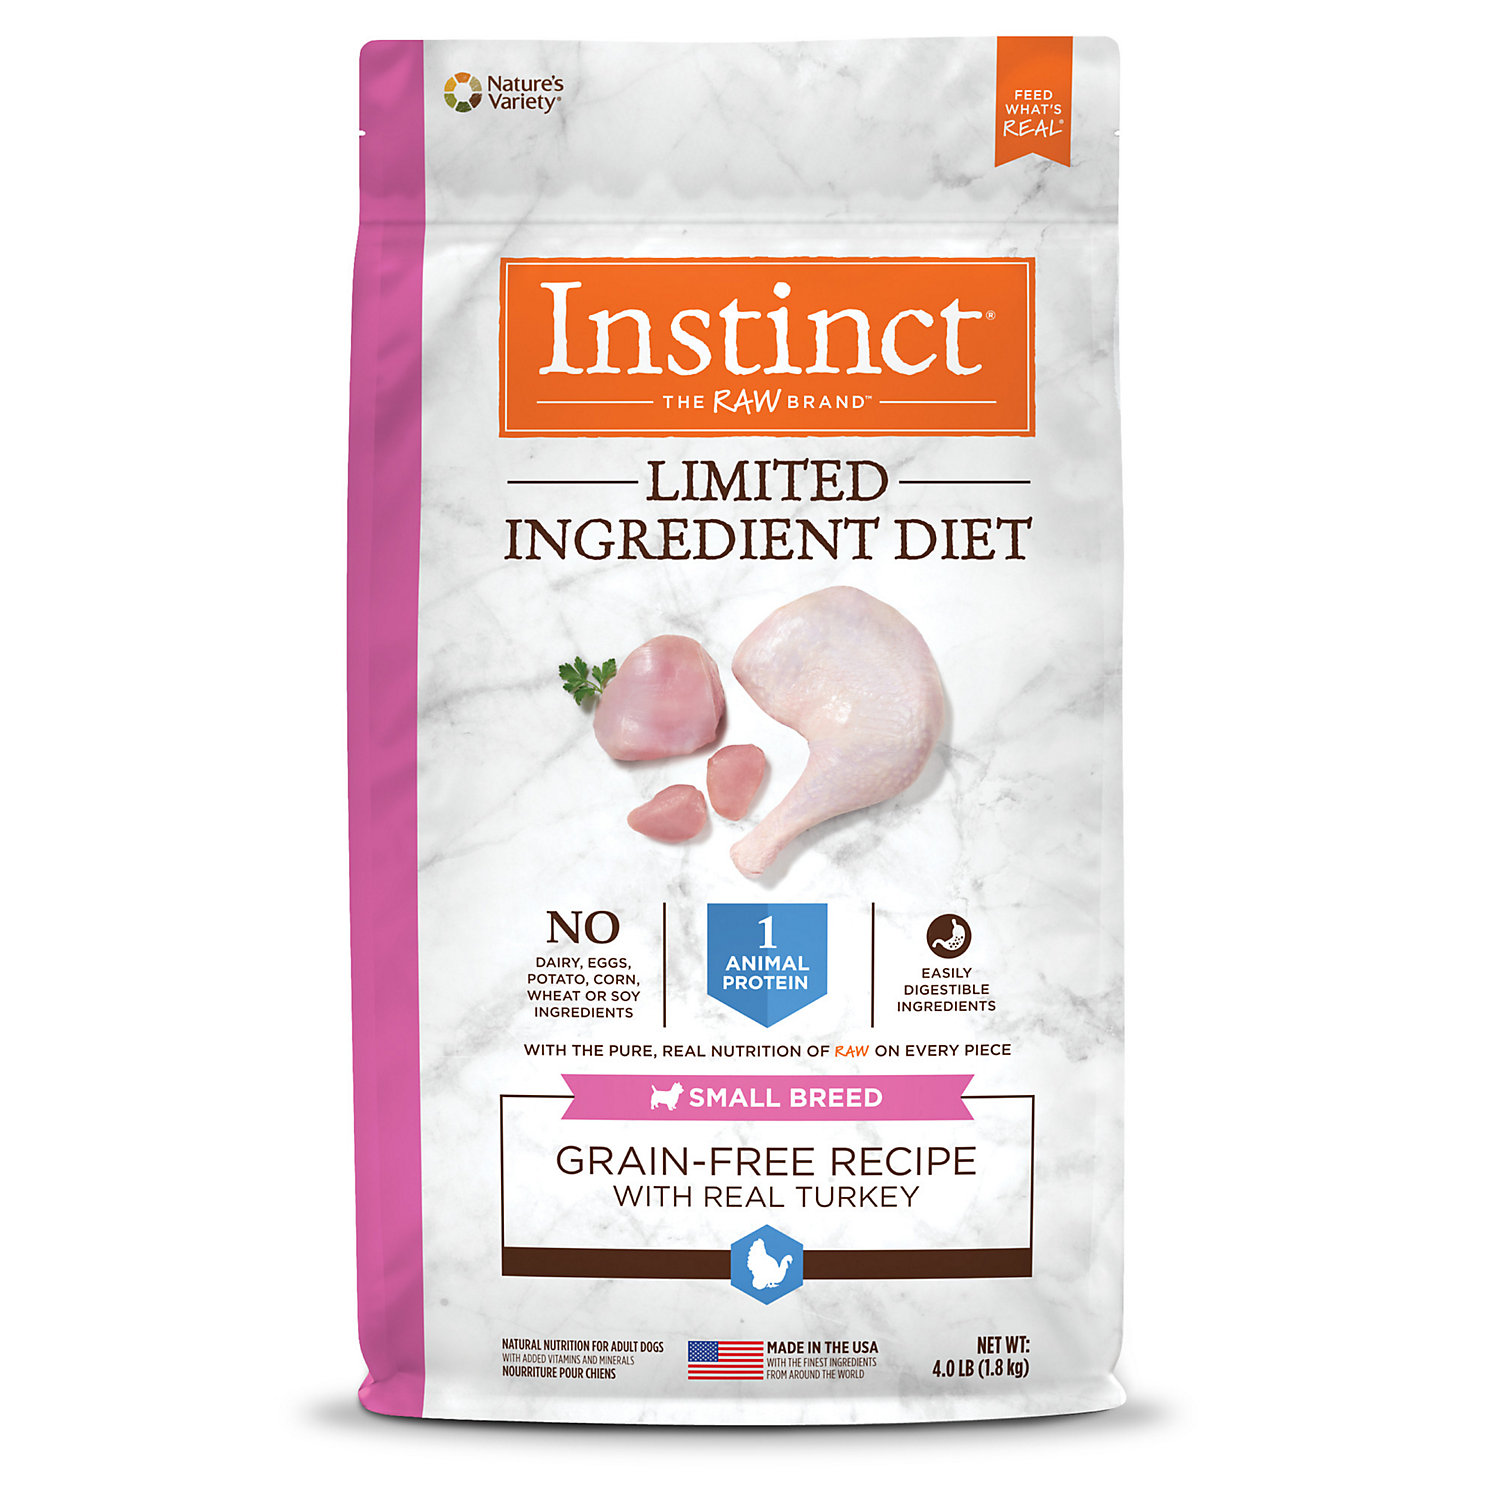 Instinct Limited Ingredient Diet Small Breed Grain Free Recipe with Real Turkey Natural Dry Dog Food by Nature's Variety